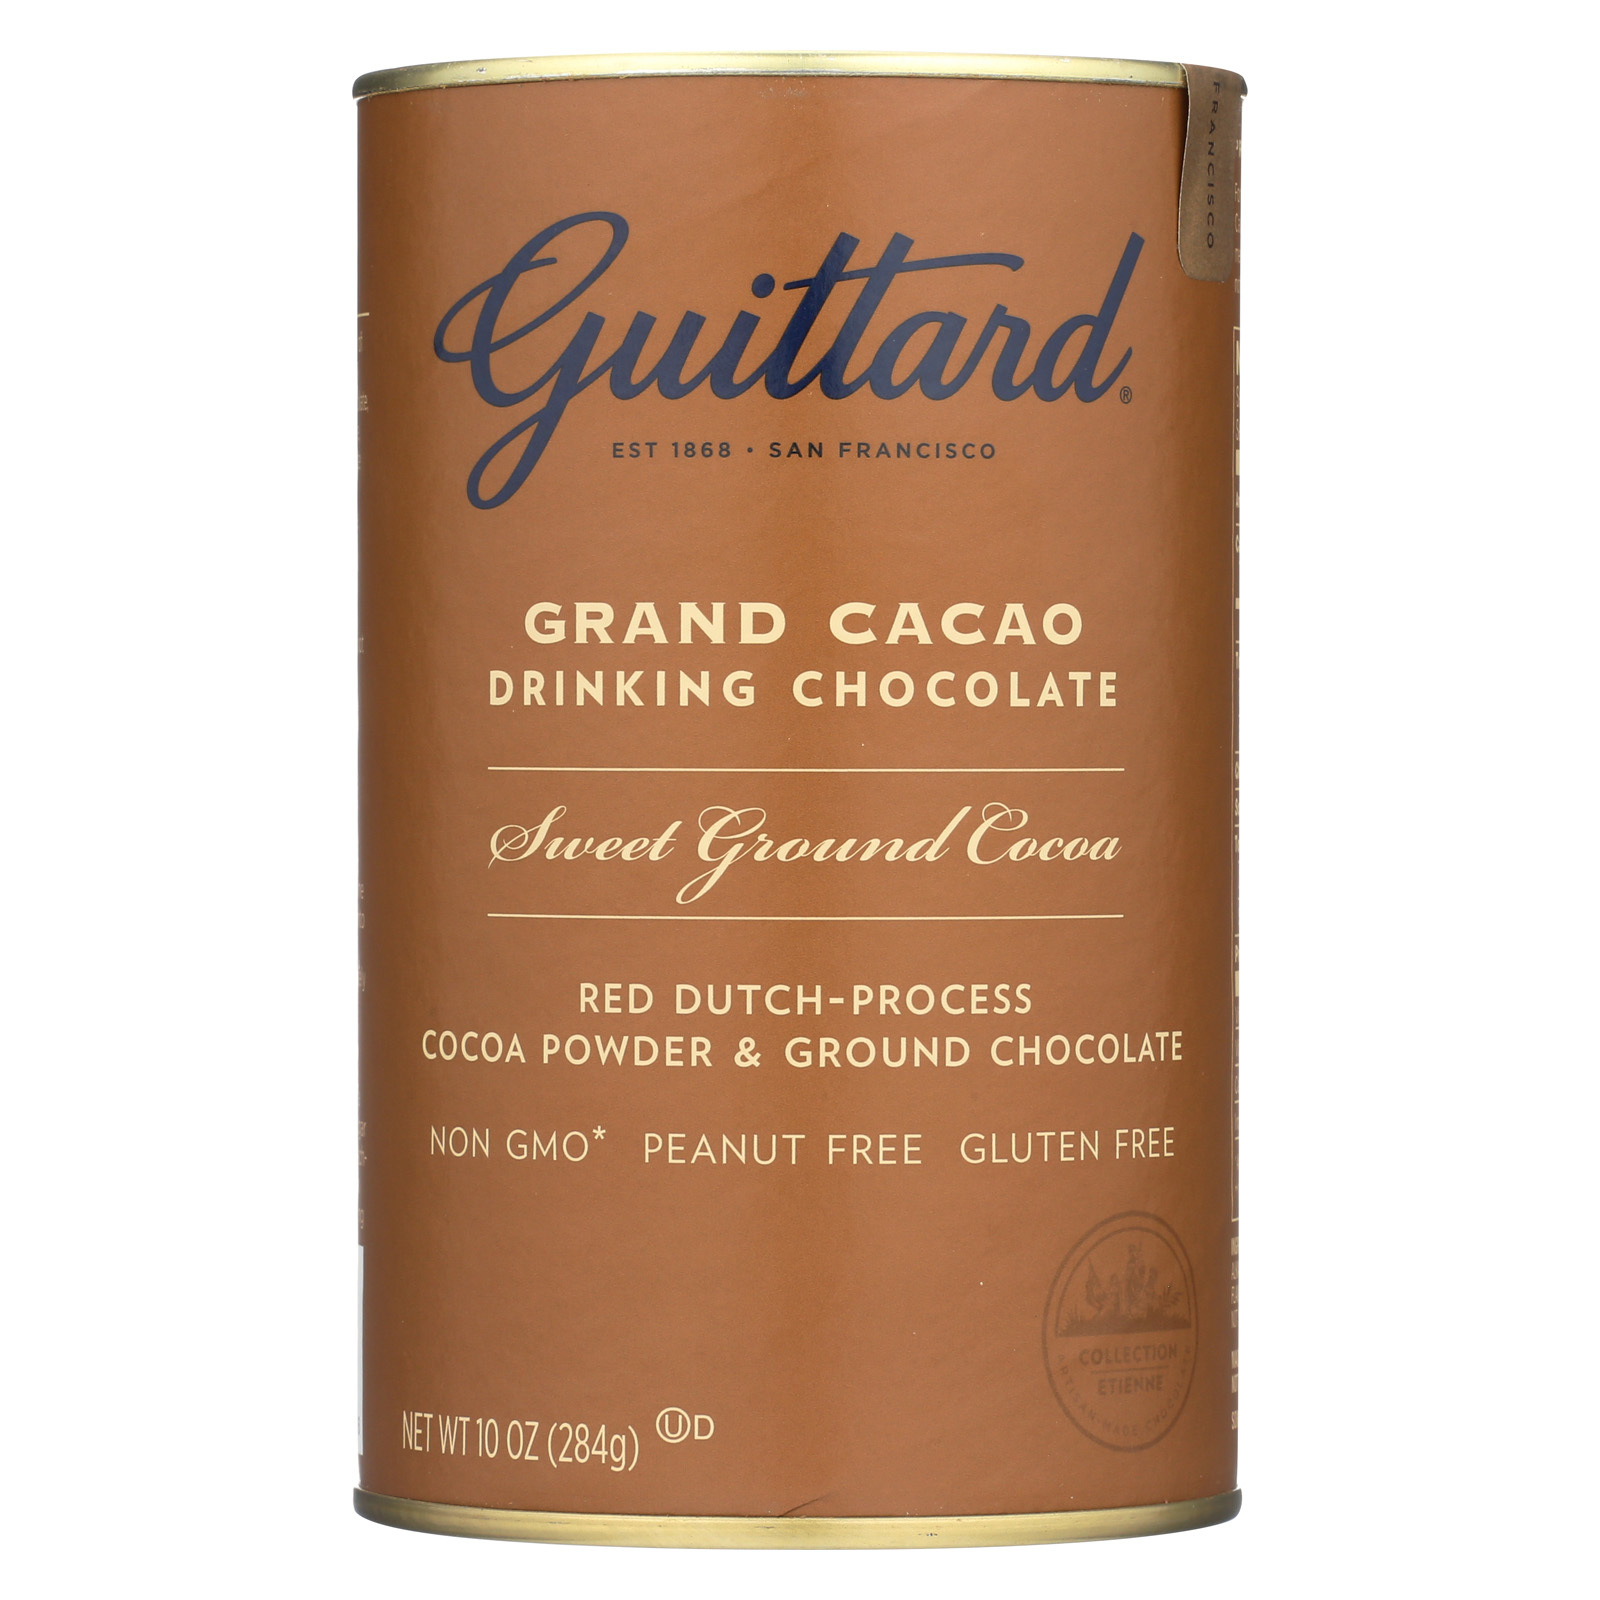 Guittard Chocolate Grand Cacao - Drinking Chocolate - Case of 6 - 10 oz.